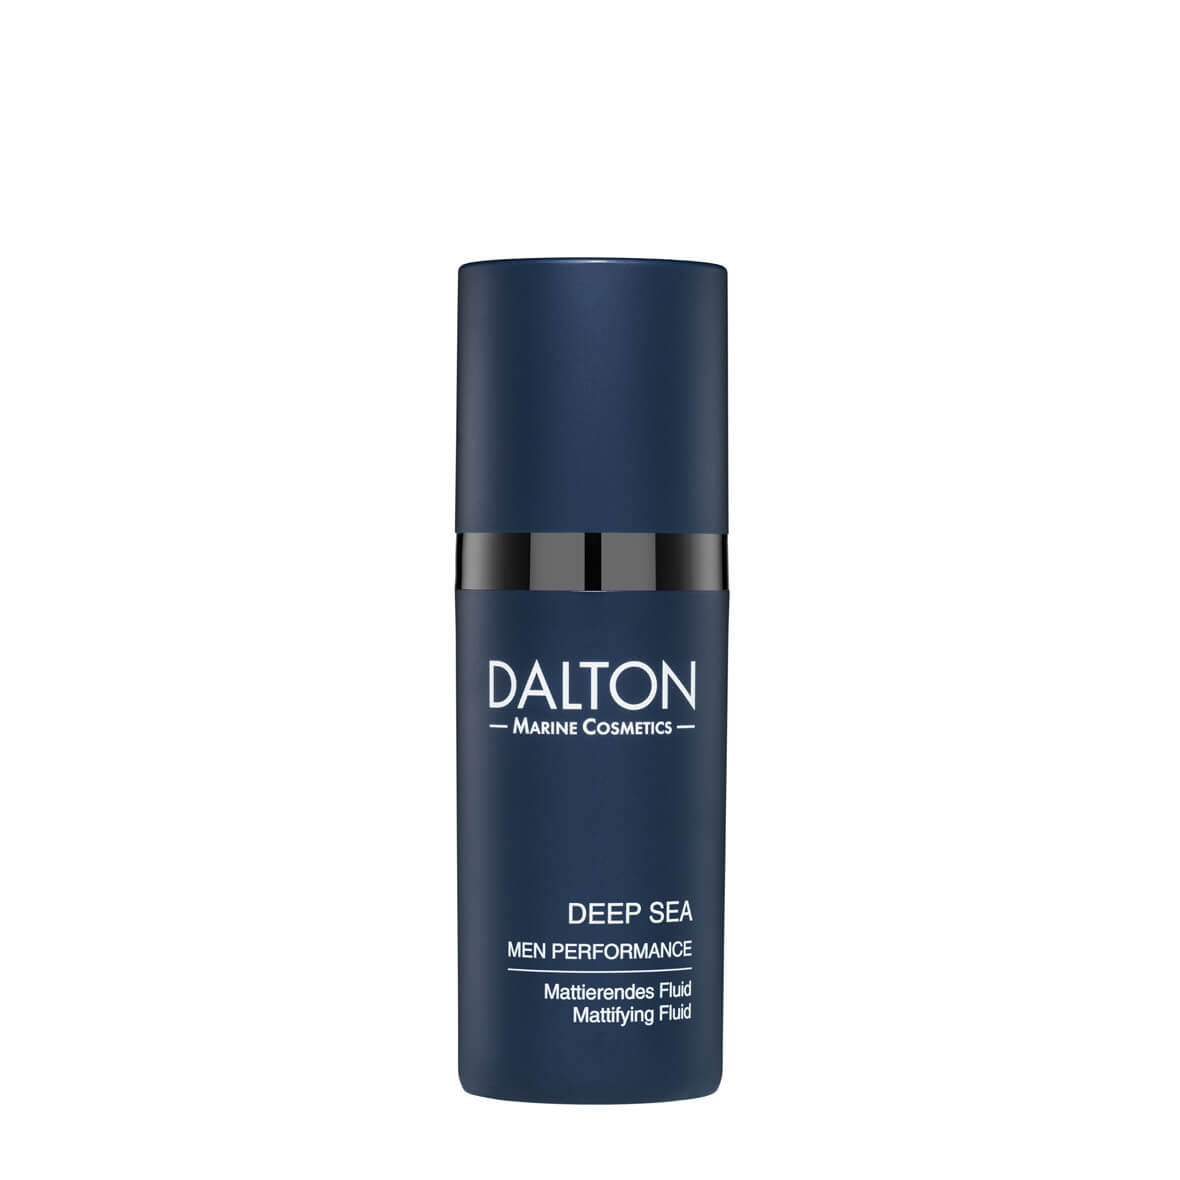 Deep Sea Mattifying Fluid 30ml., crema matifianta, Dalton Marine Cosmetics, Era Cosmetics